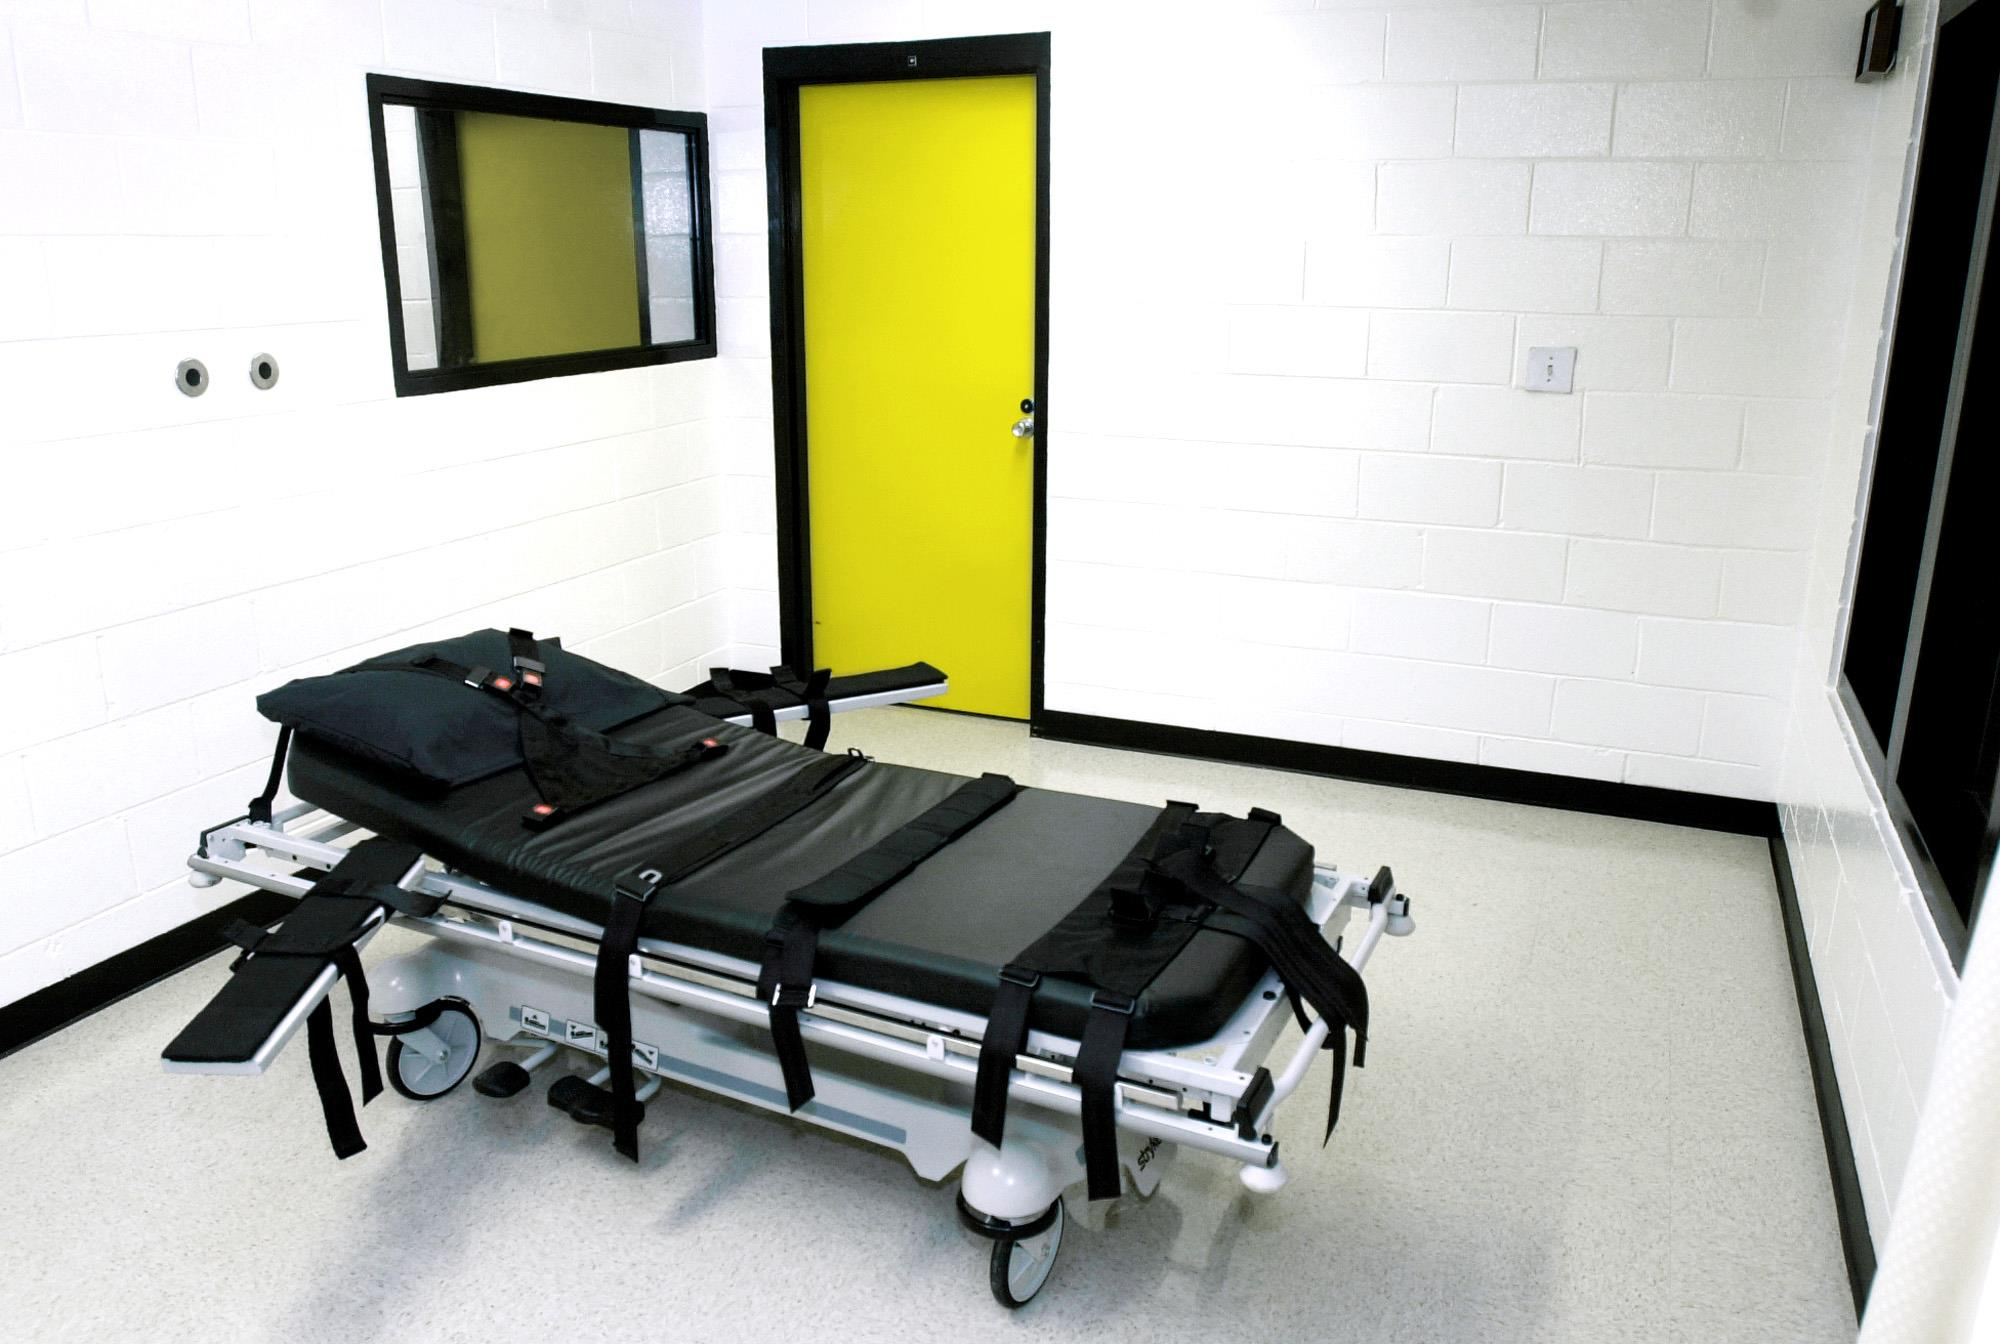 Image: The death chamber at the state prison in Jackson, Ga